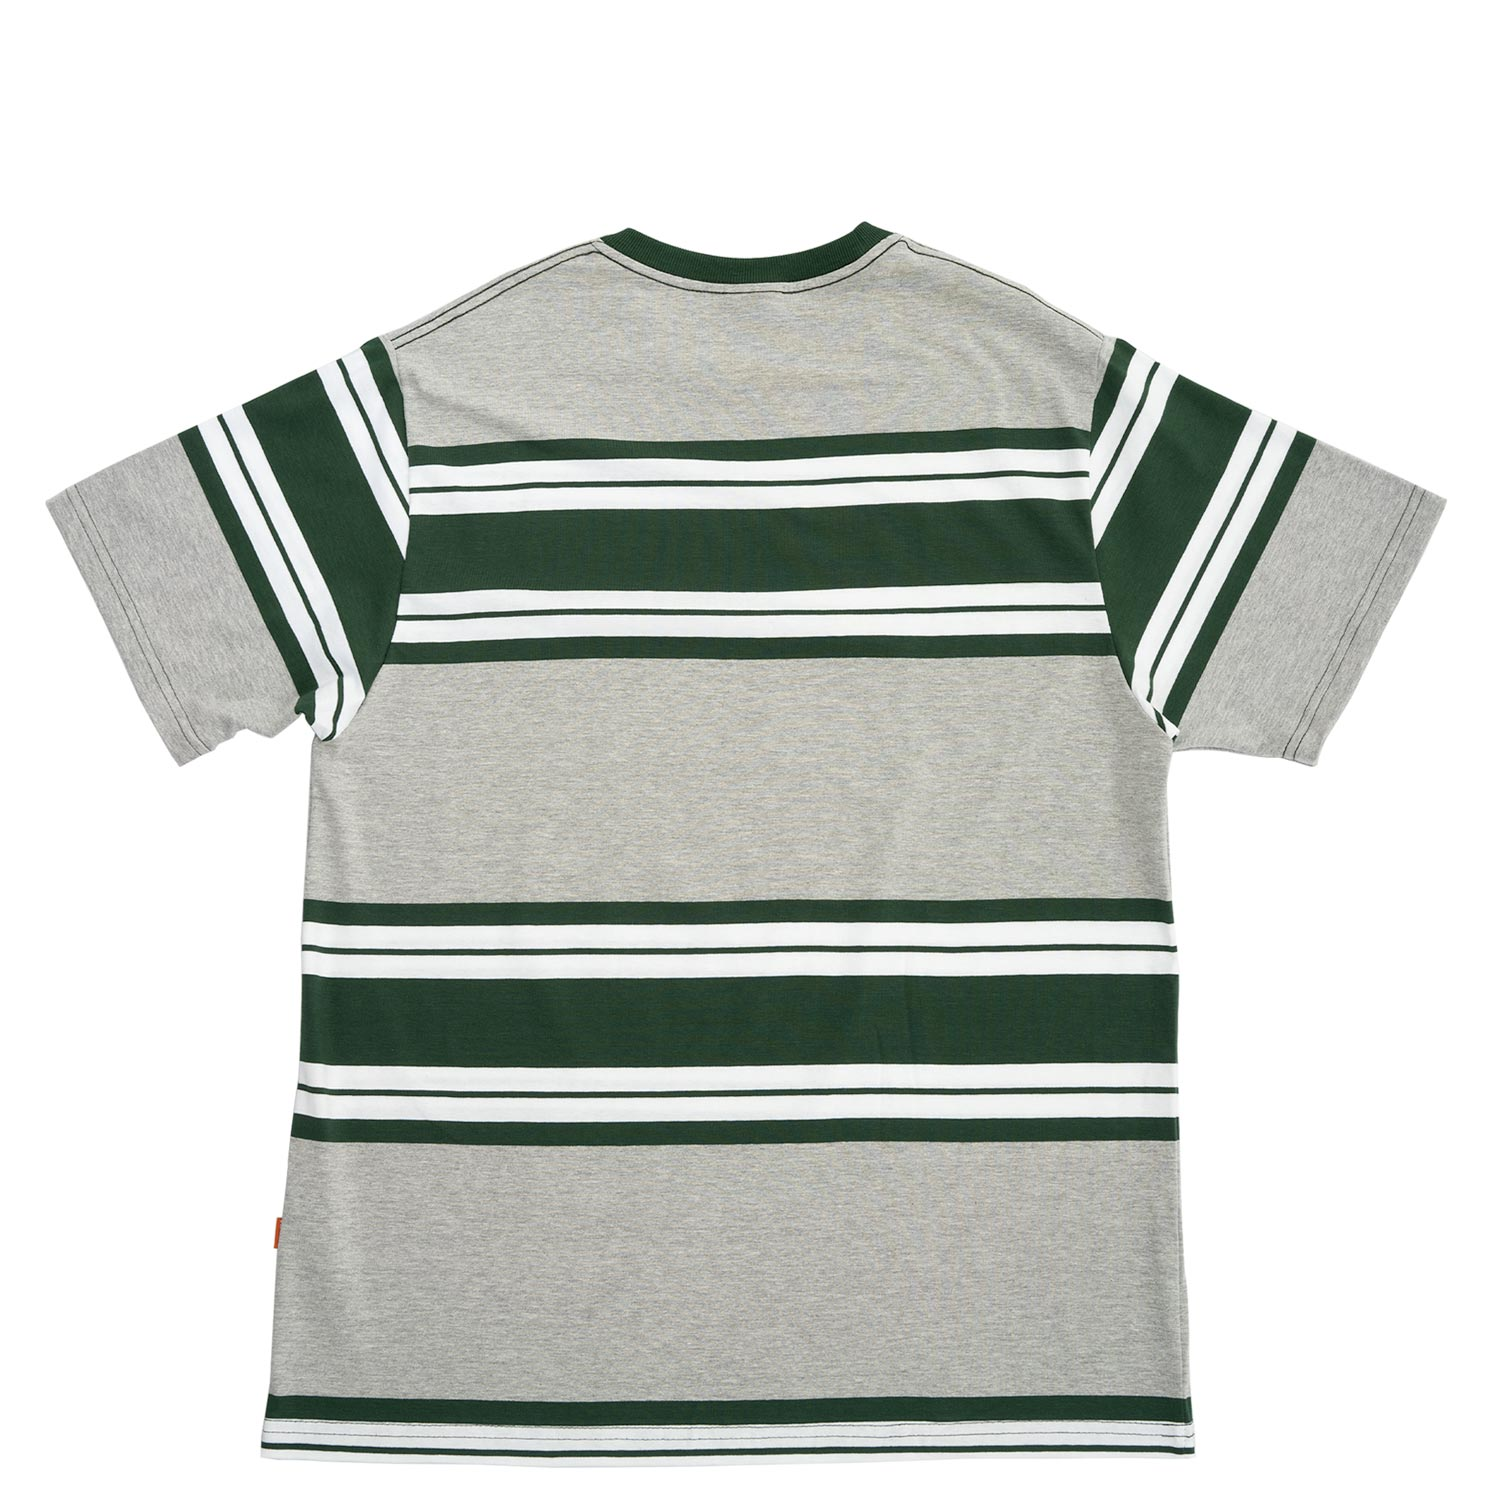 Tee_Kidz_OG_Heather_Grey_Green